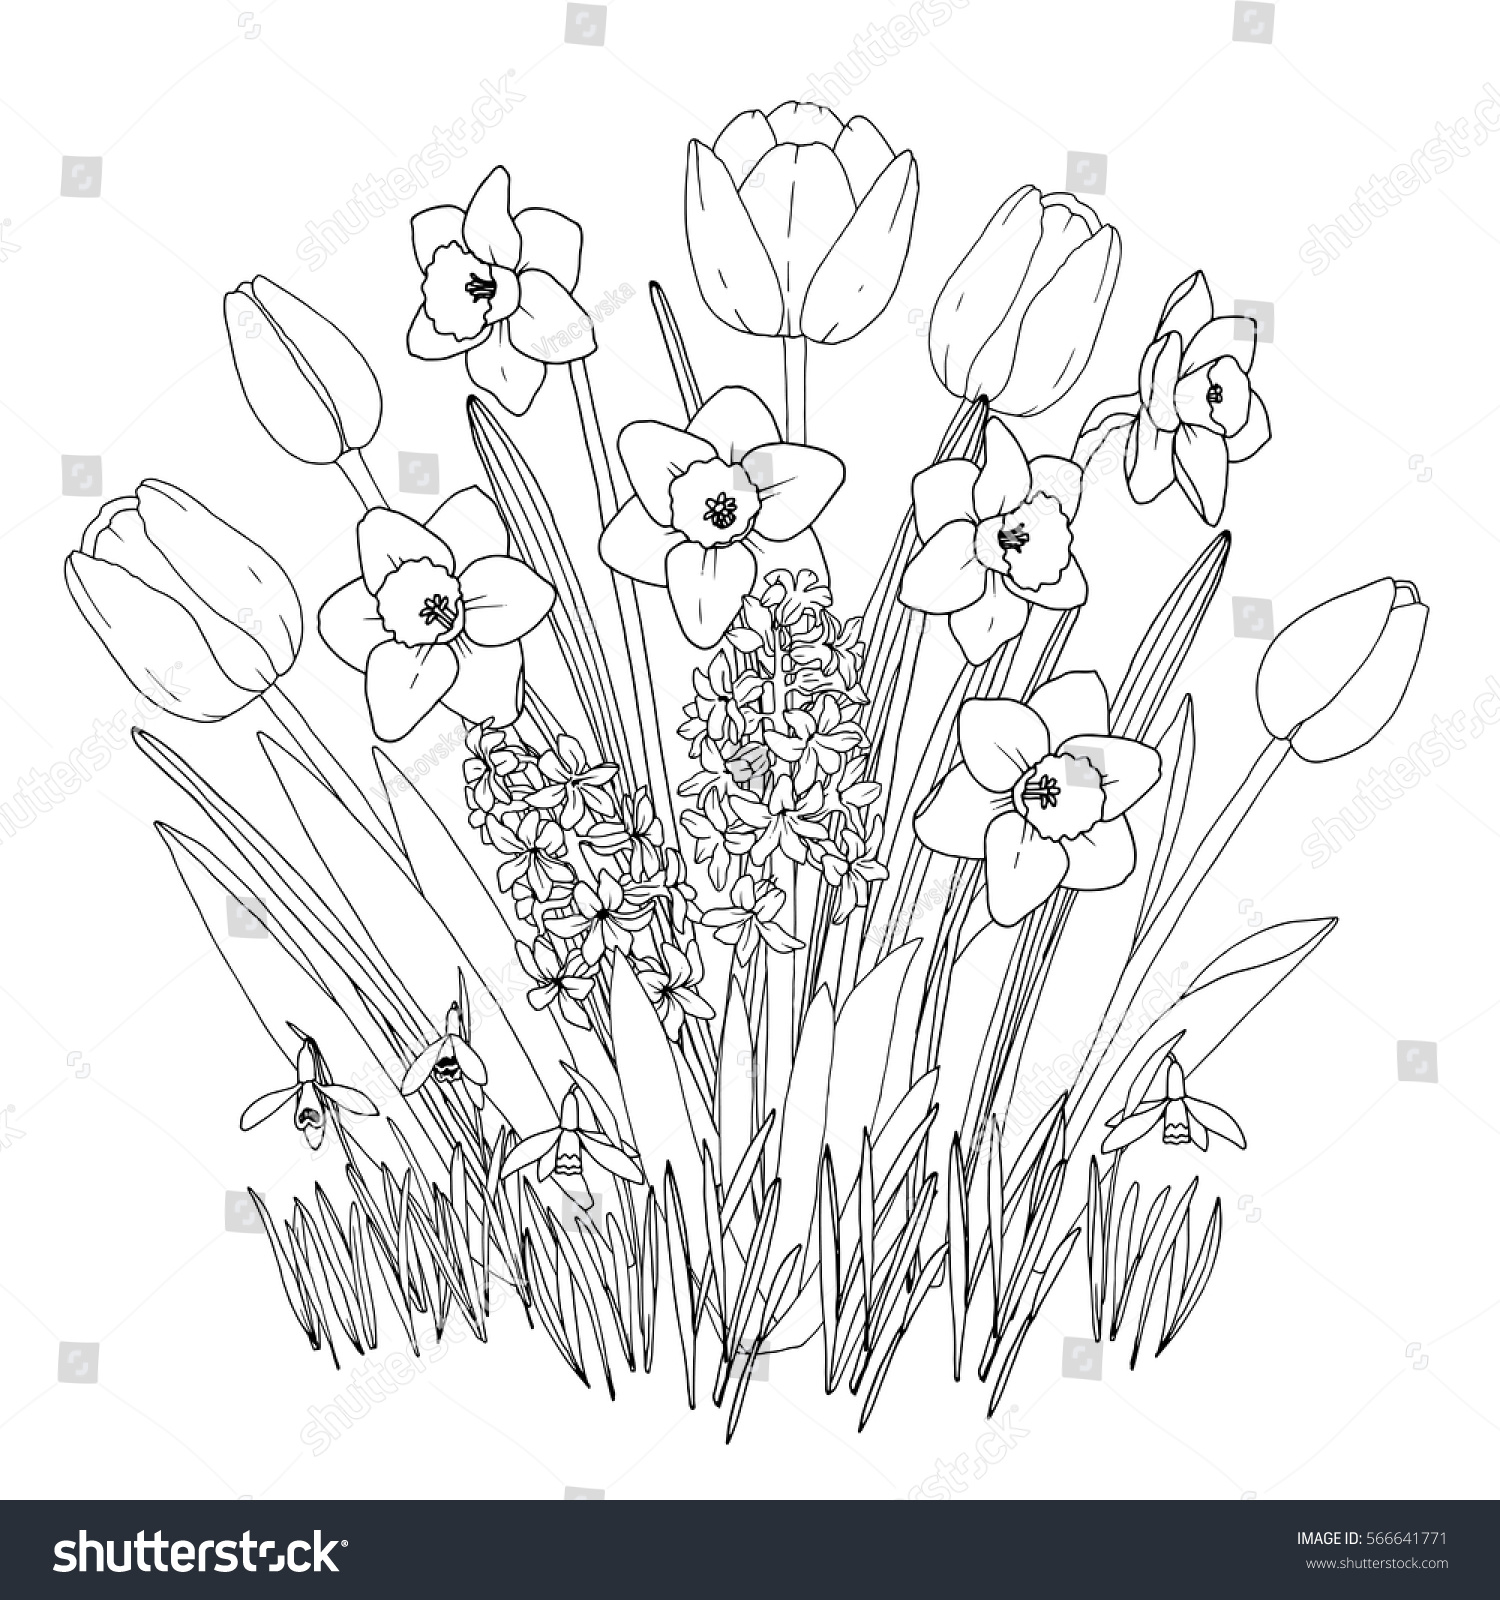 spring garden flowers coloring page hand drawn set with blooming daffodils tulips - Spring Garden Coloring Pages